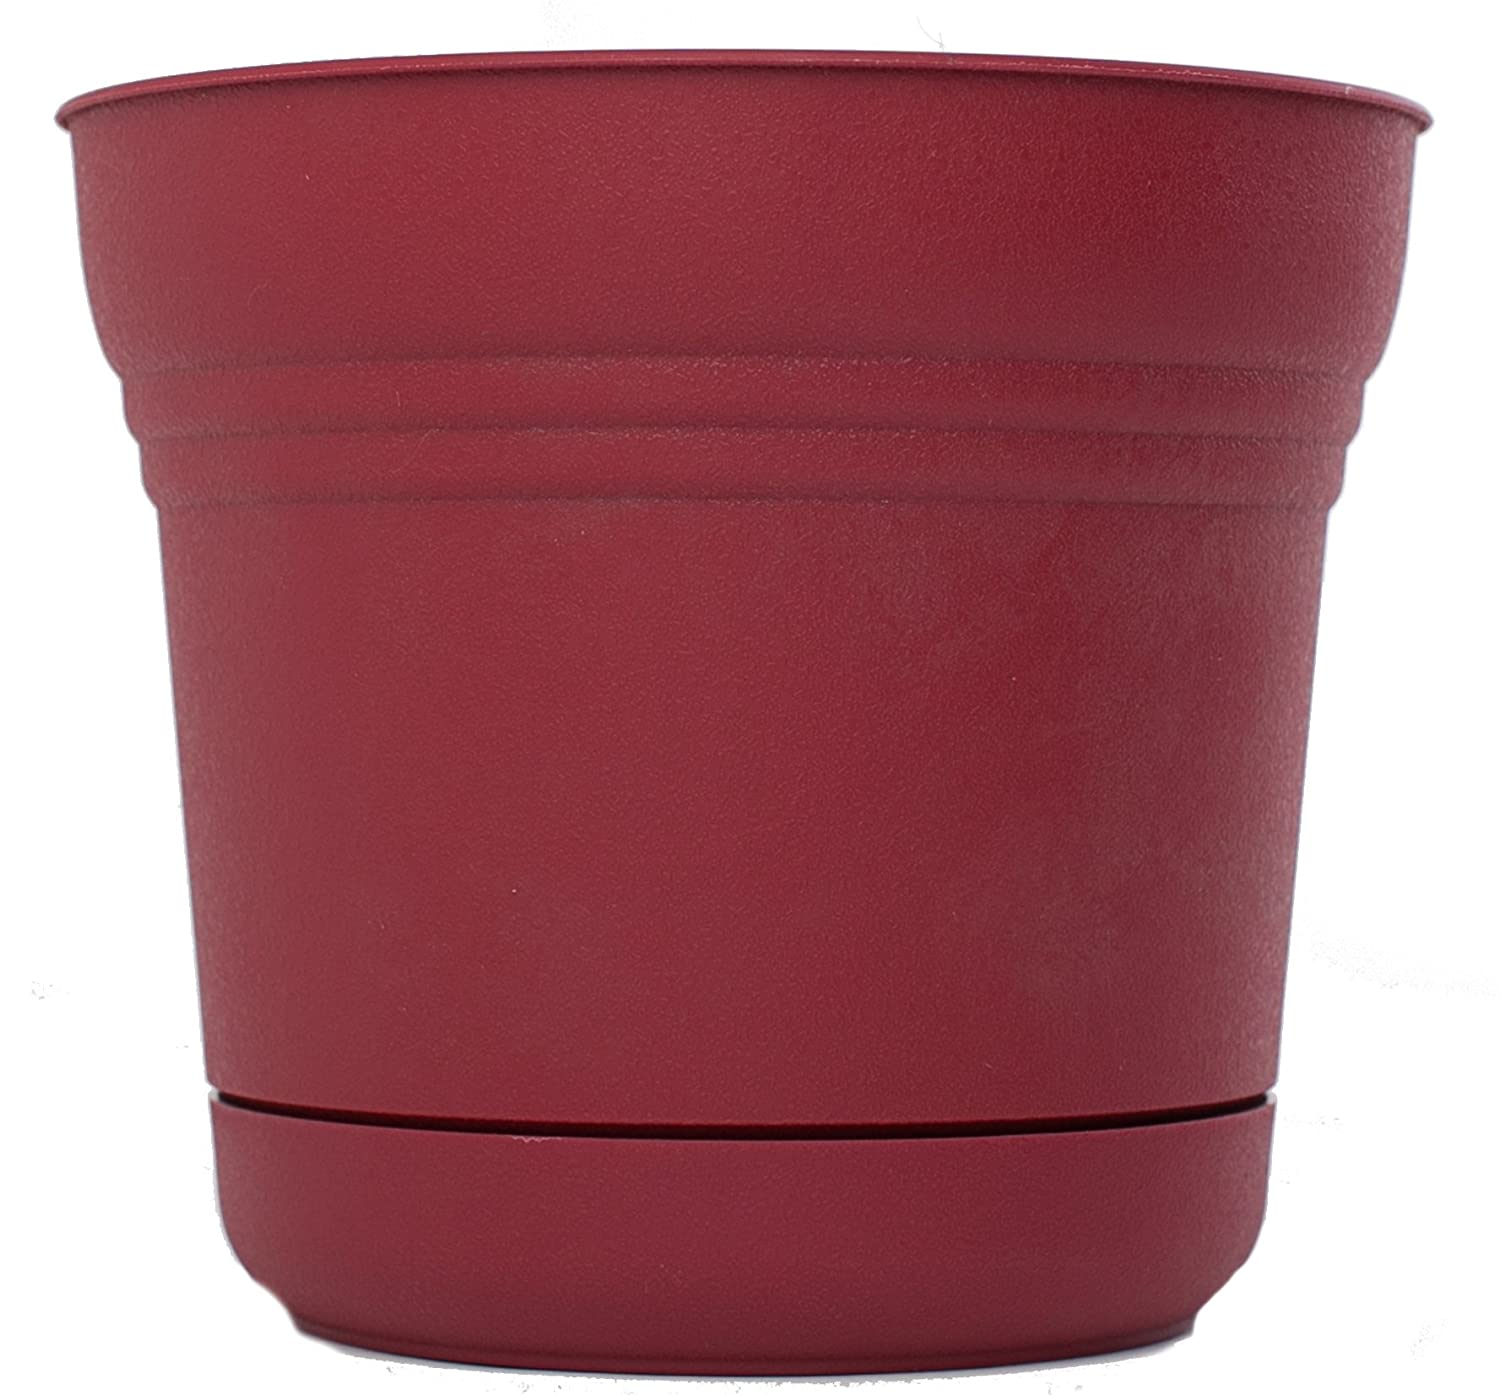 Bloem SP0512-12 12-Pack Saturn Planter, 5-Inch, Union Red